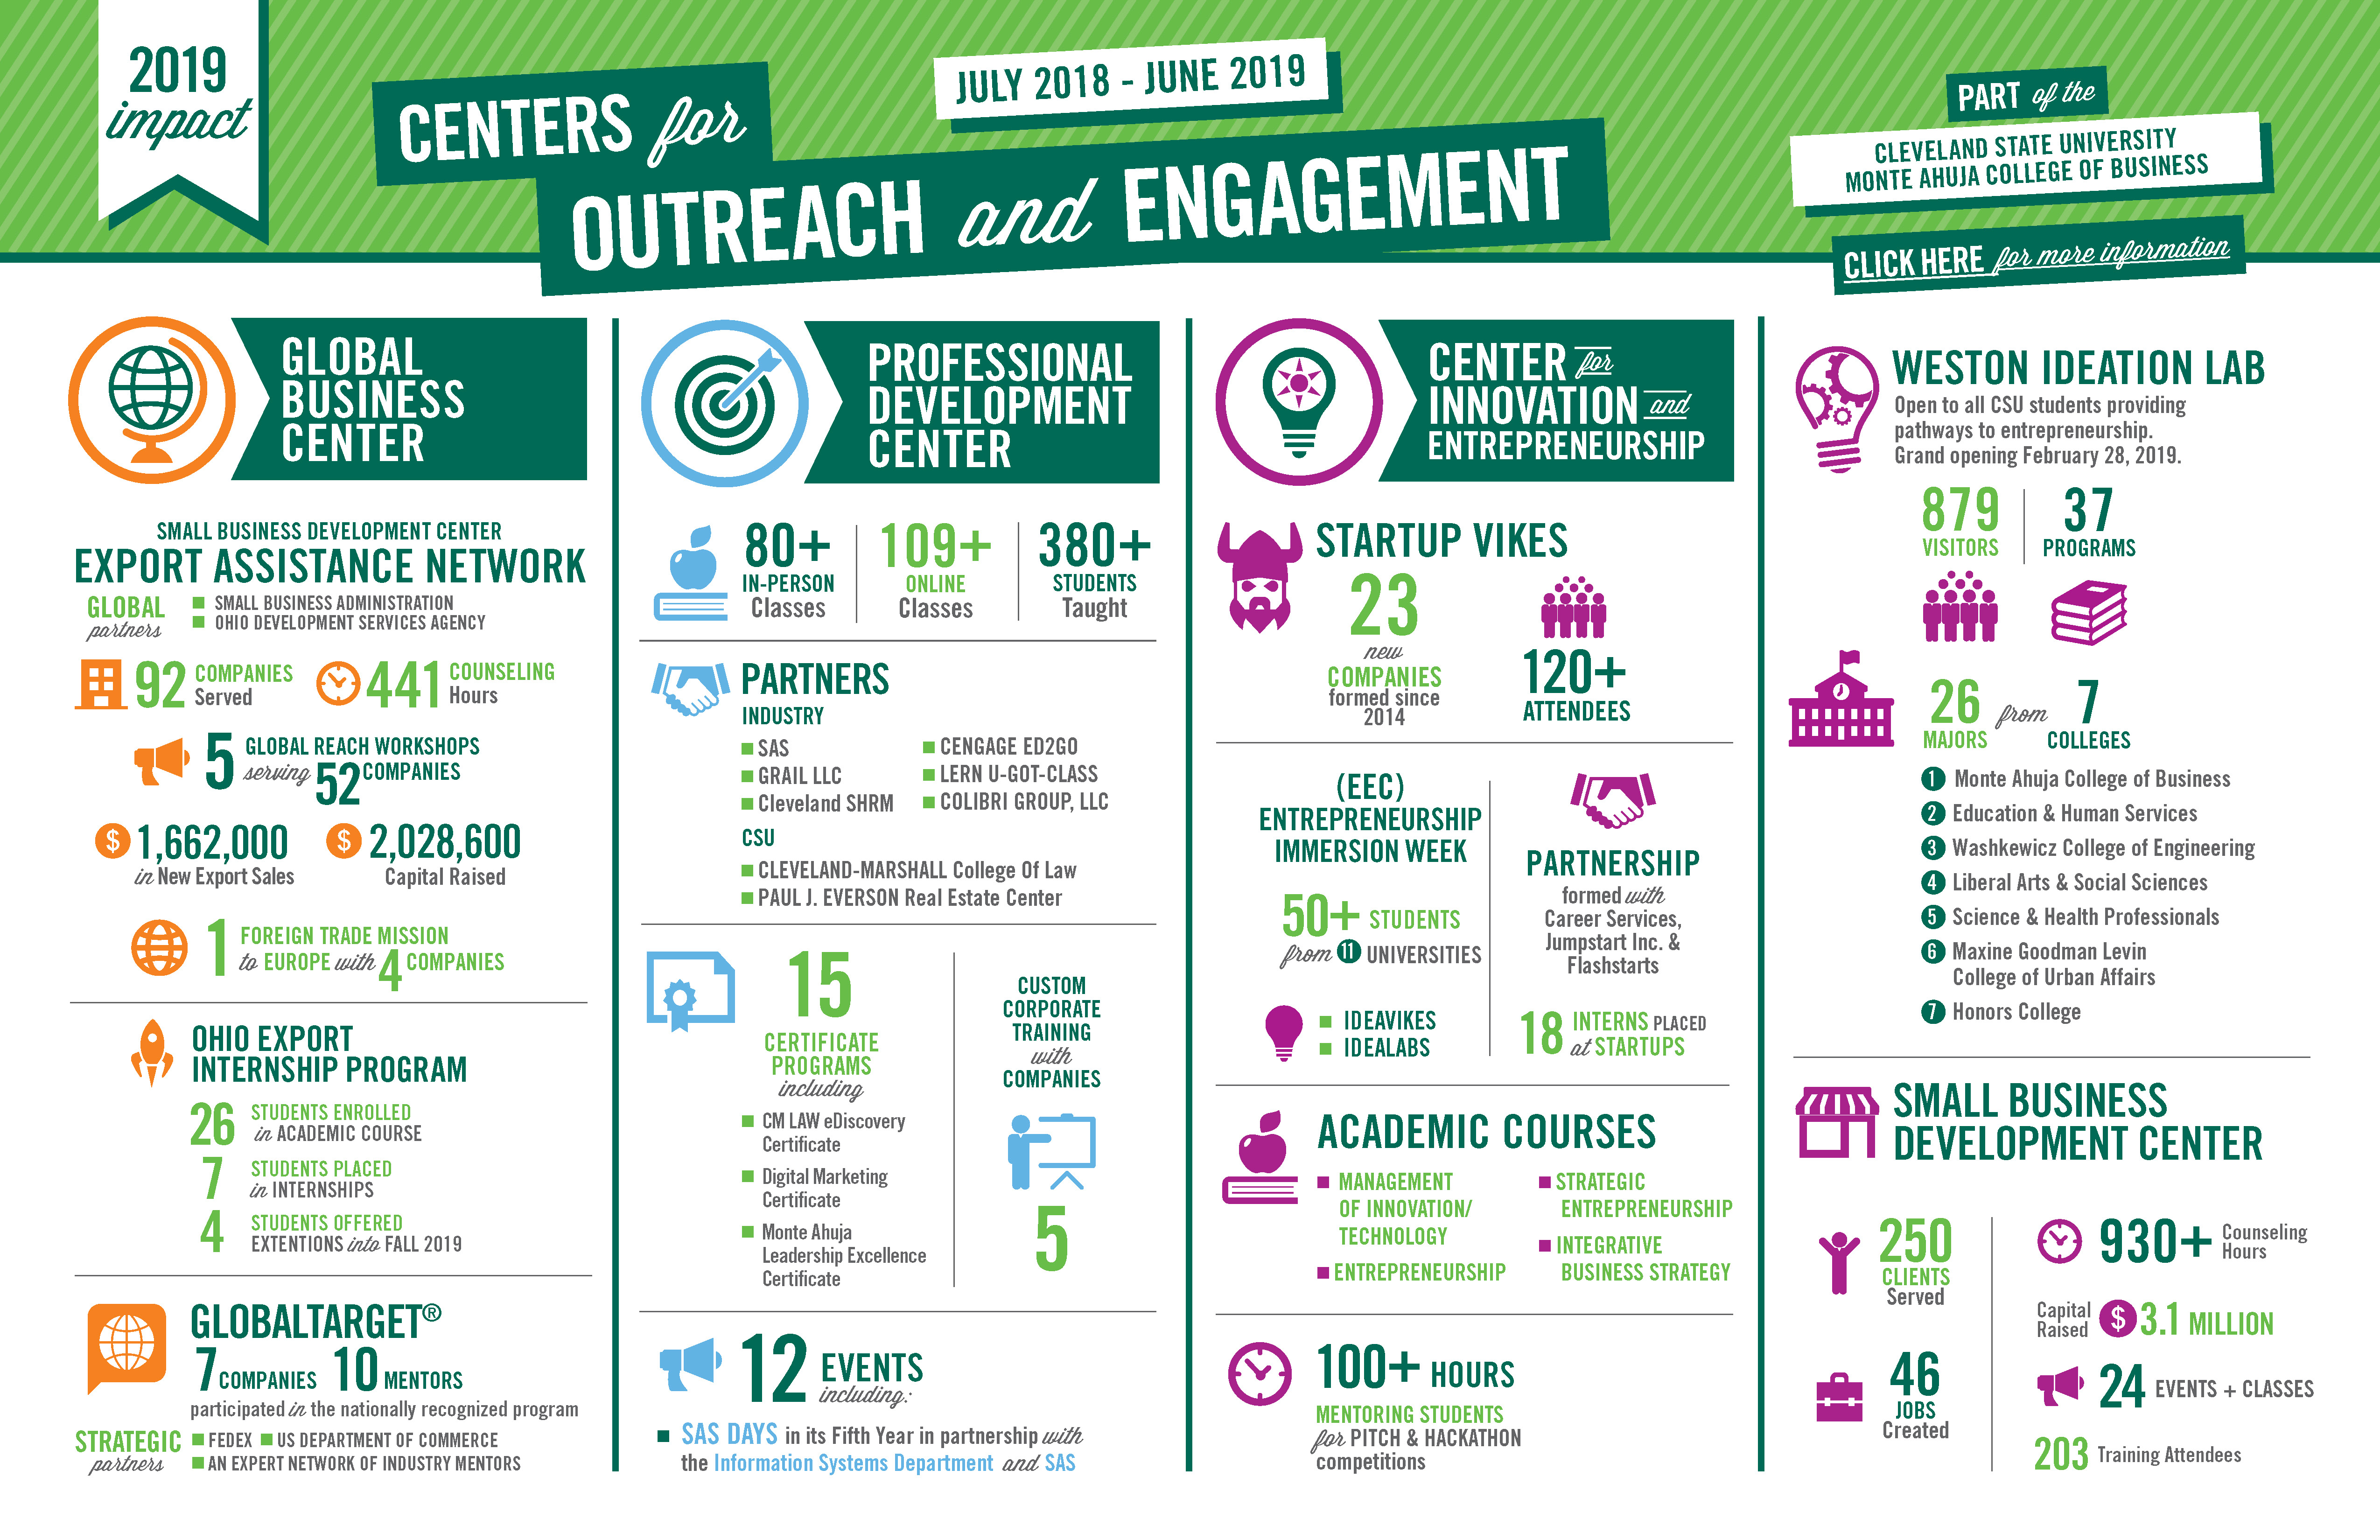 Centers for Outreach & Engagement - 2019 Impact Report